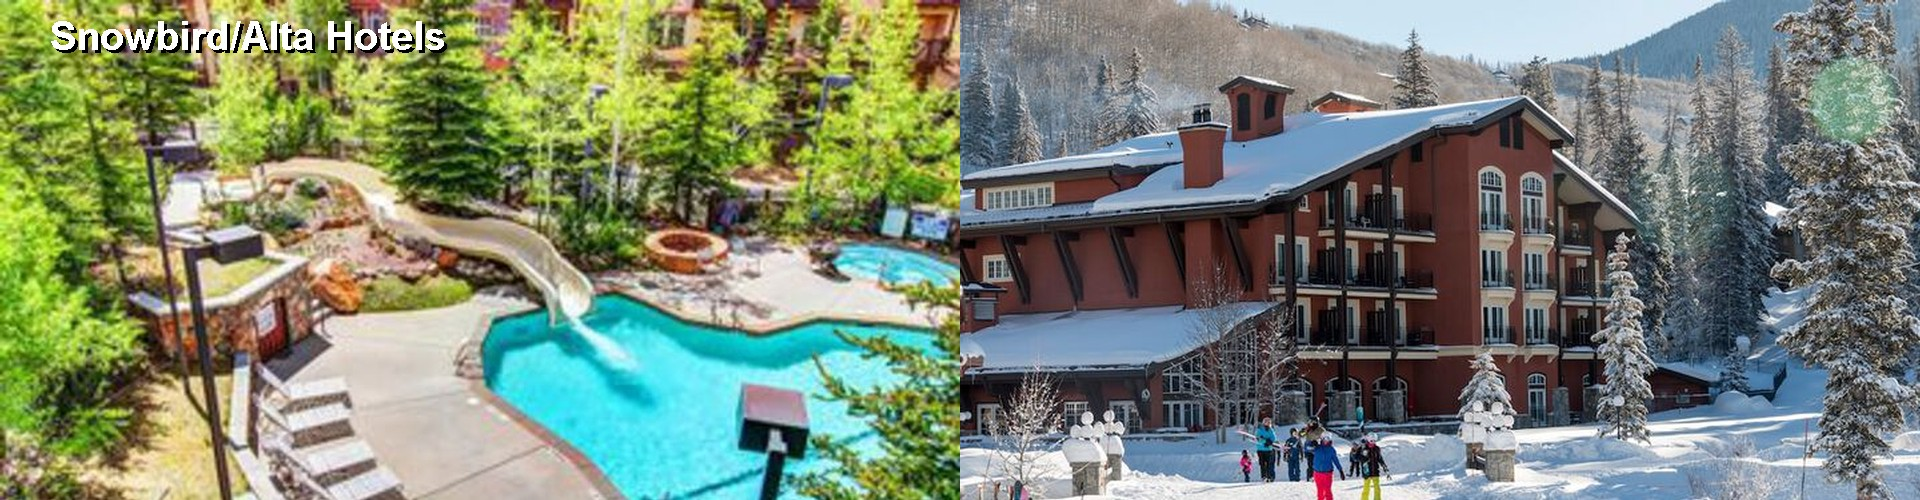 5 Best Hotels near Snowbird/Alta